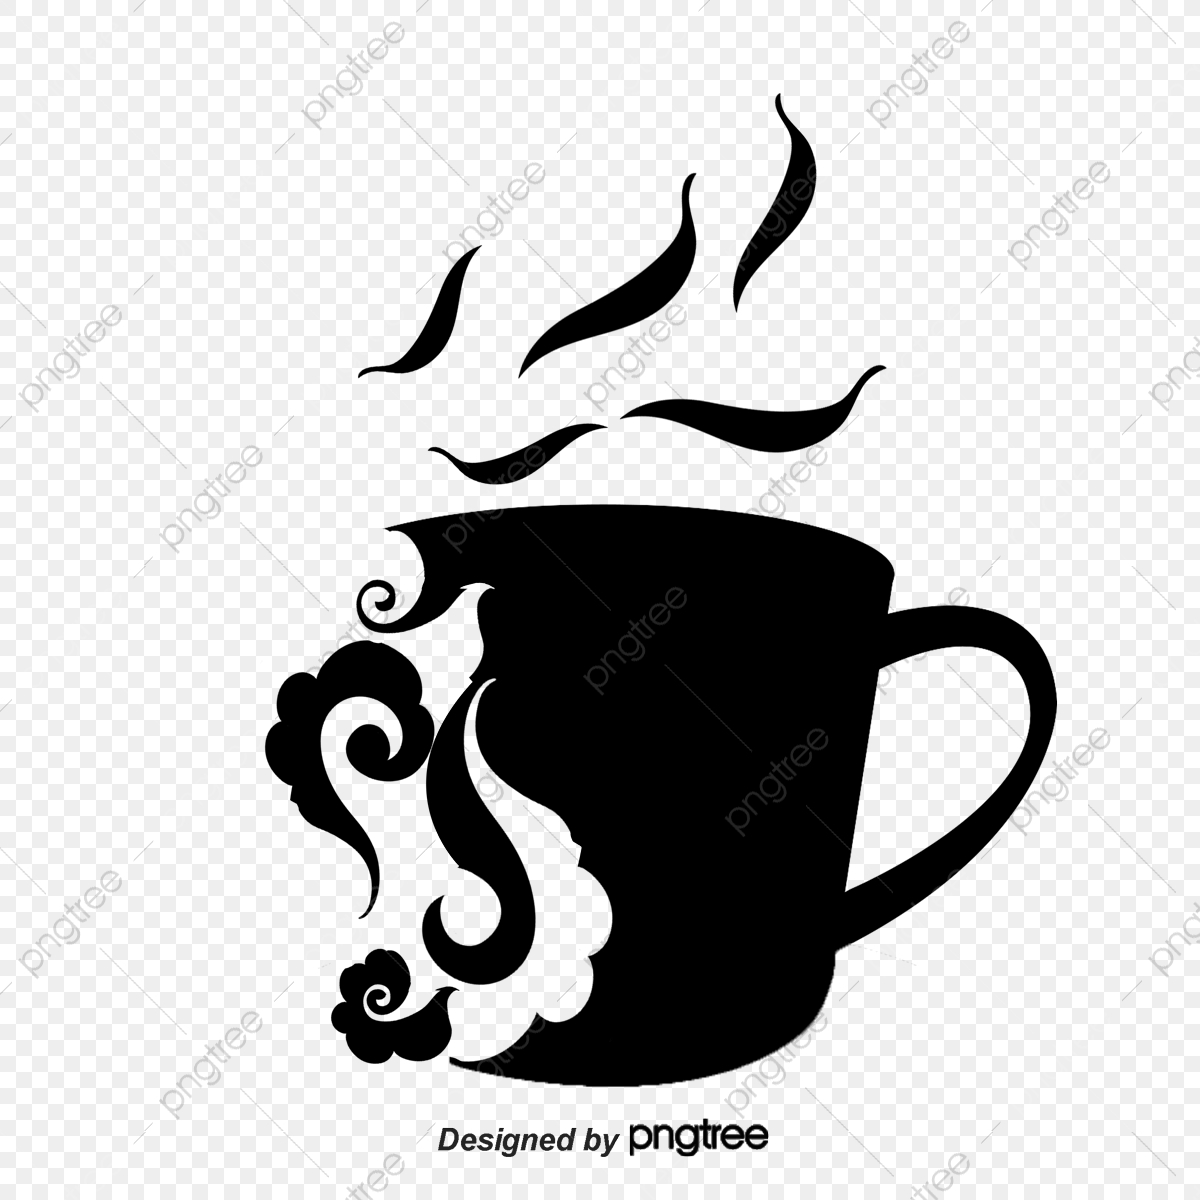 Silhouette Decorative Cup, Silhouette Vector, Cup, Chinese Style PNG.